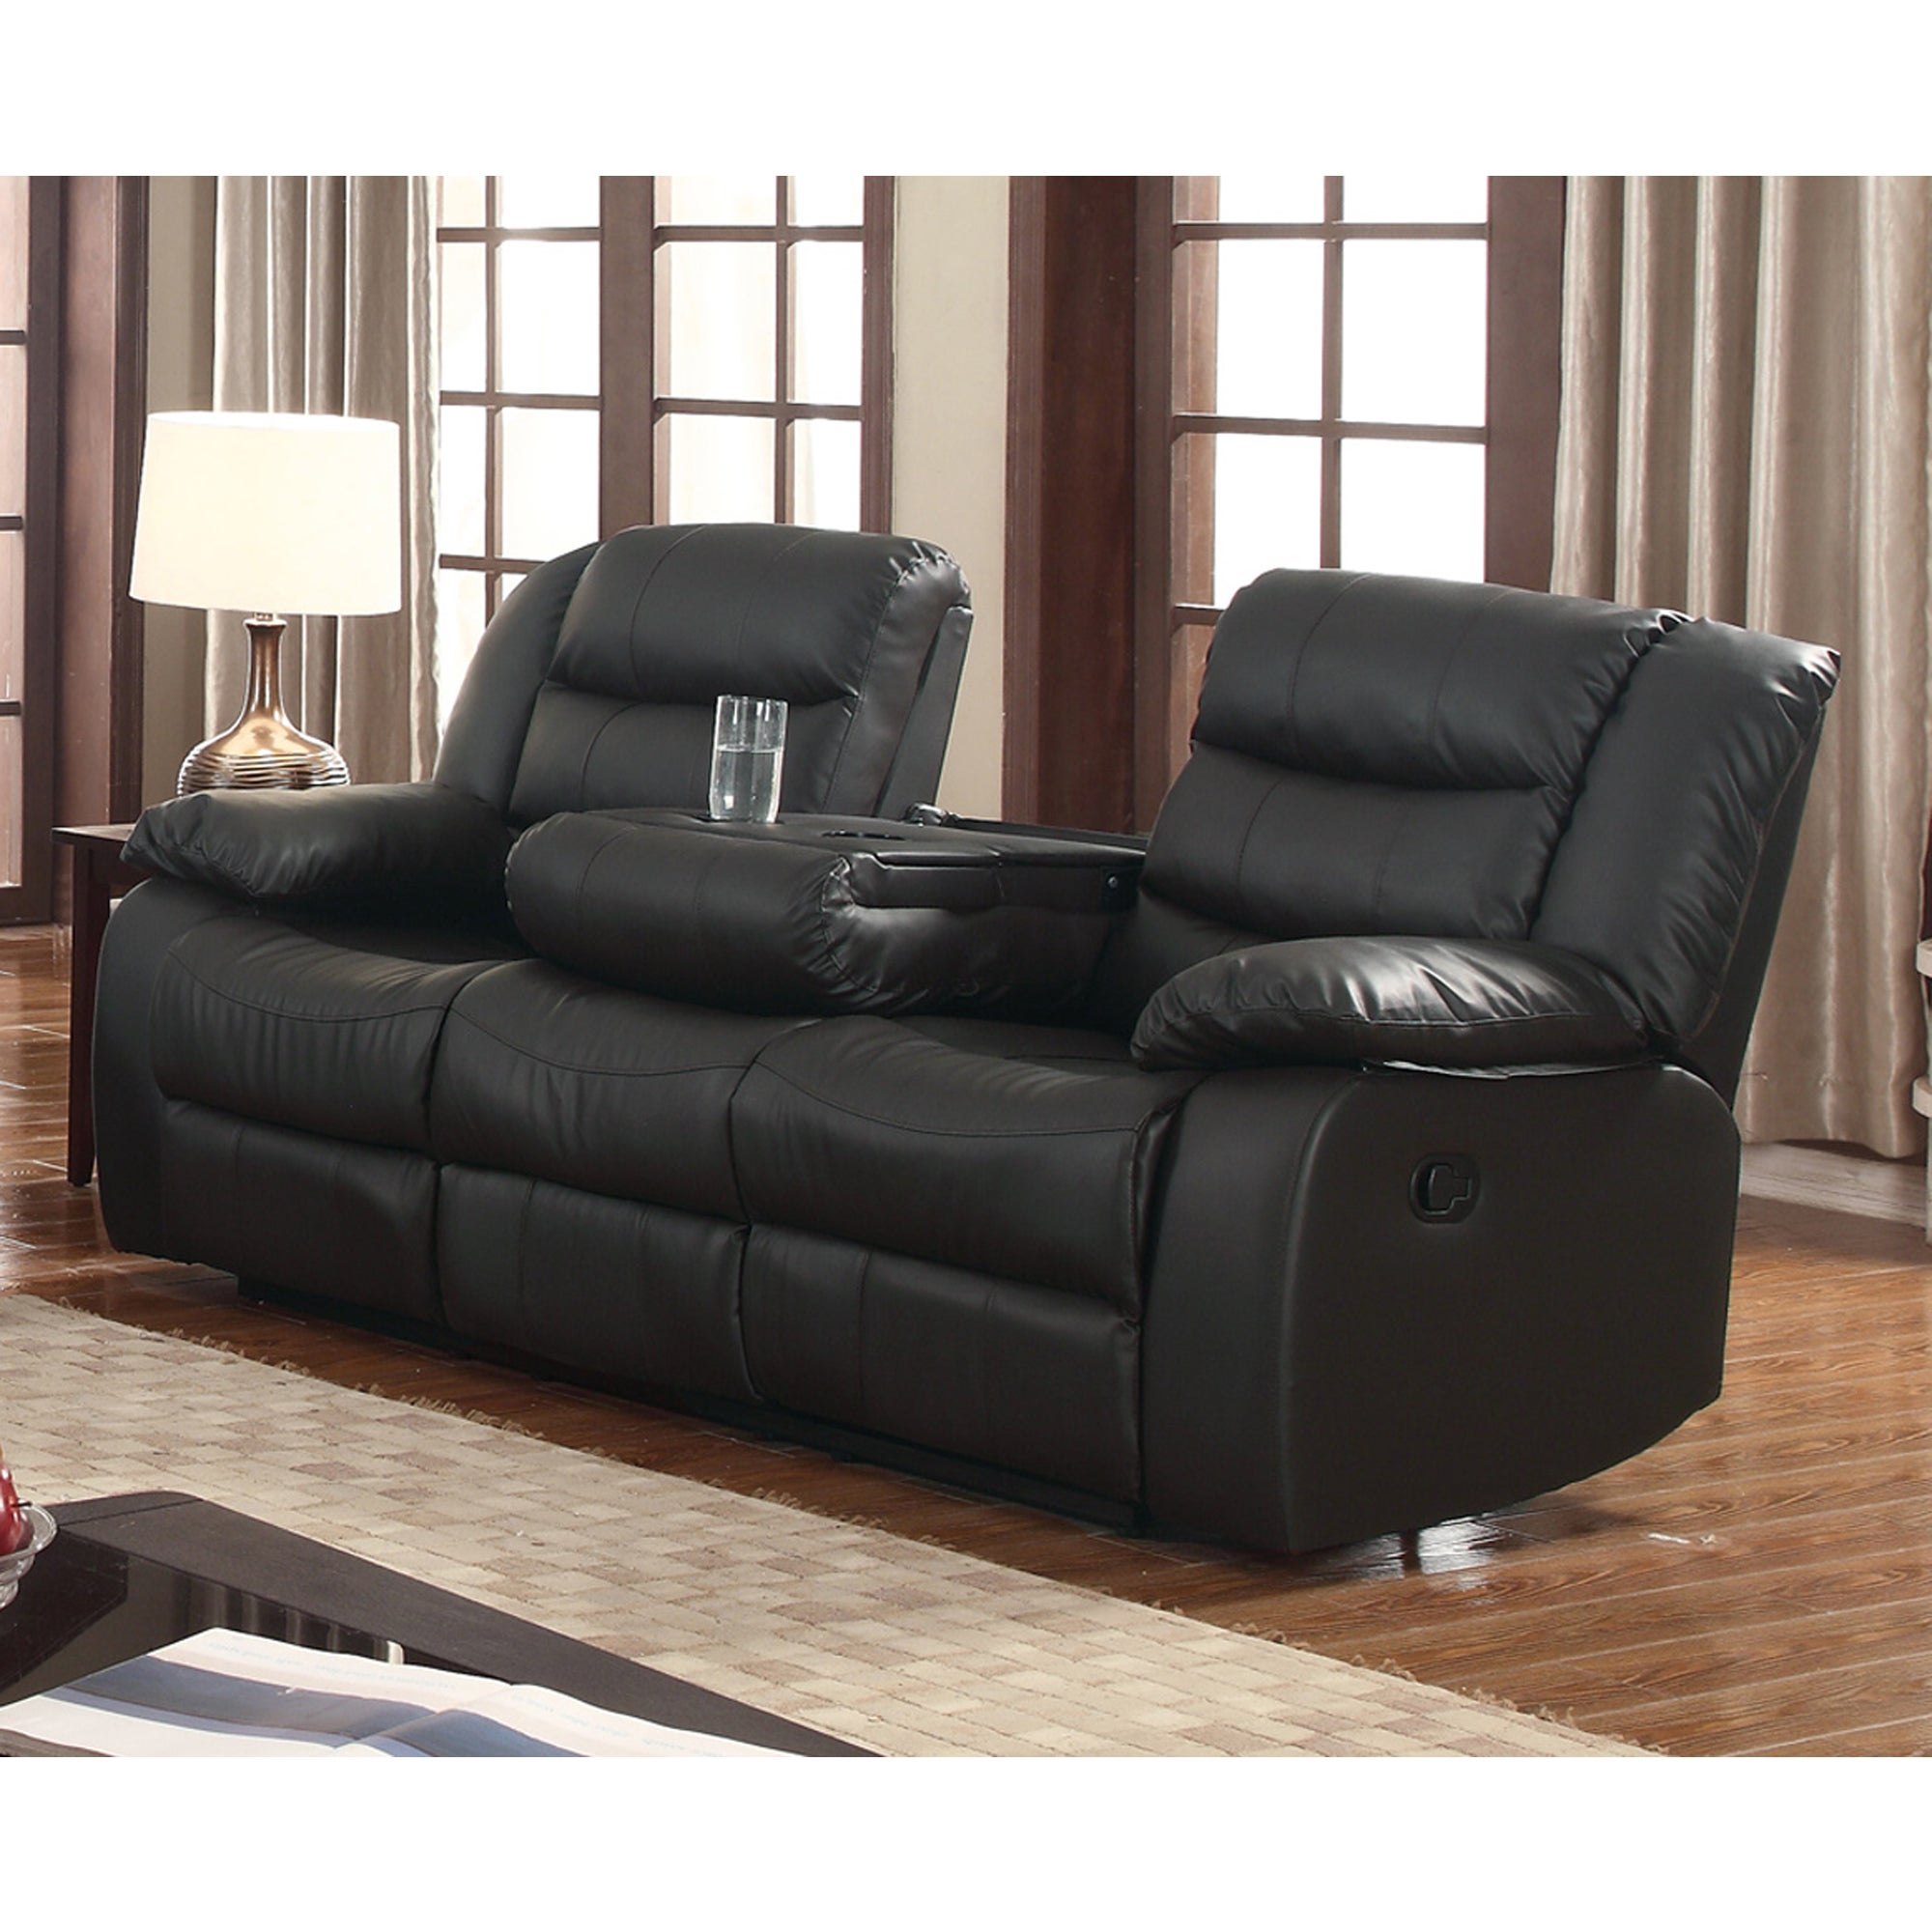 Marvelous Gloria Faux Leather Living Room Reclining Sofa With Drop Down Table Beatyapartments Chair Design Images Beatyapartmentscom